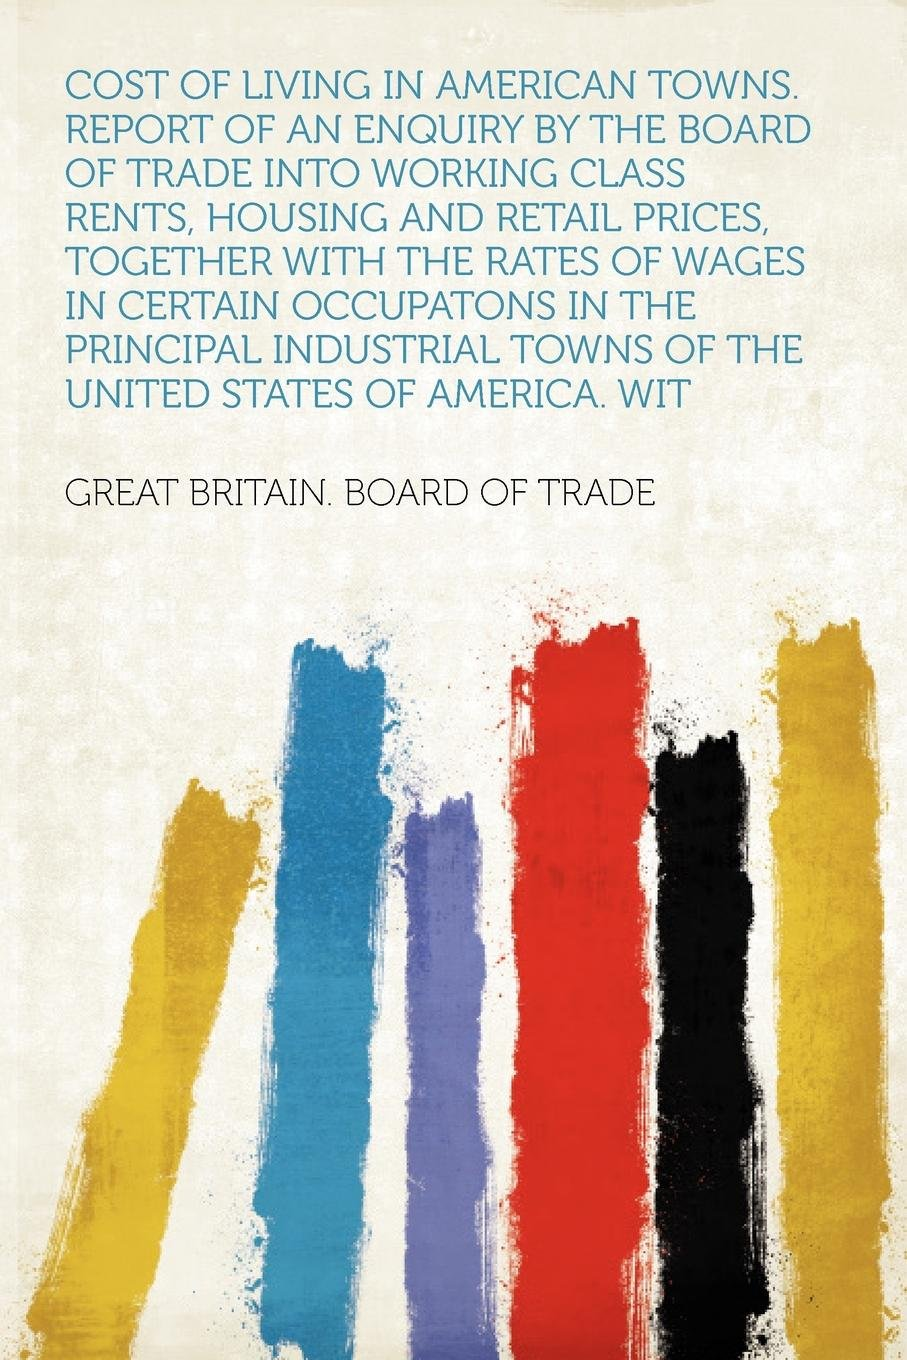 Cost of Living in American Towns. Report of an Enquiry by the Board of Trade Into Working Class Rents, Housing and Retail Prices, Together With the ... Towns of the United States of America. Wit ebook